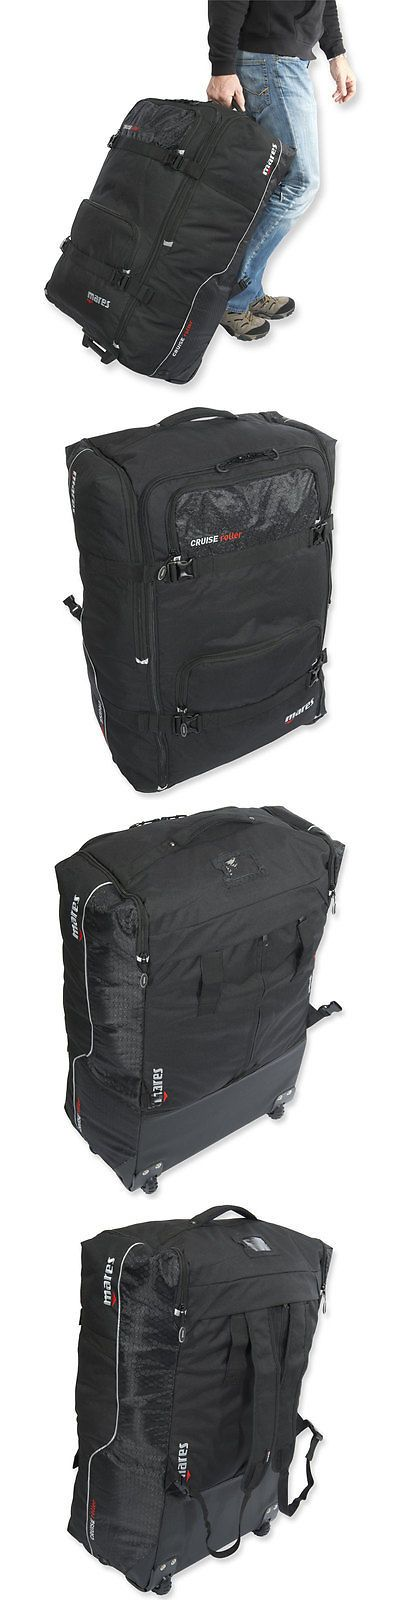 Gear Bags 29576: Mares Cruise Roller Foldable Backpack, Scuba Gear Dive Bag BUY IT NOW ONLY: $159.95